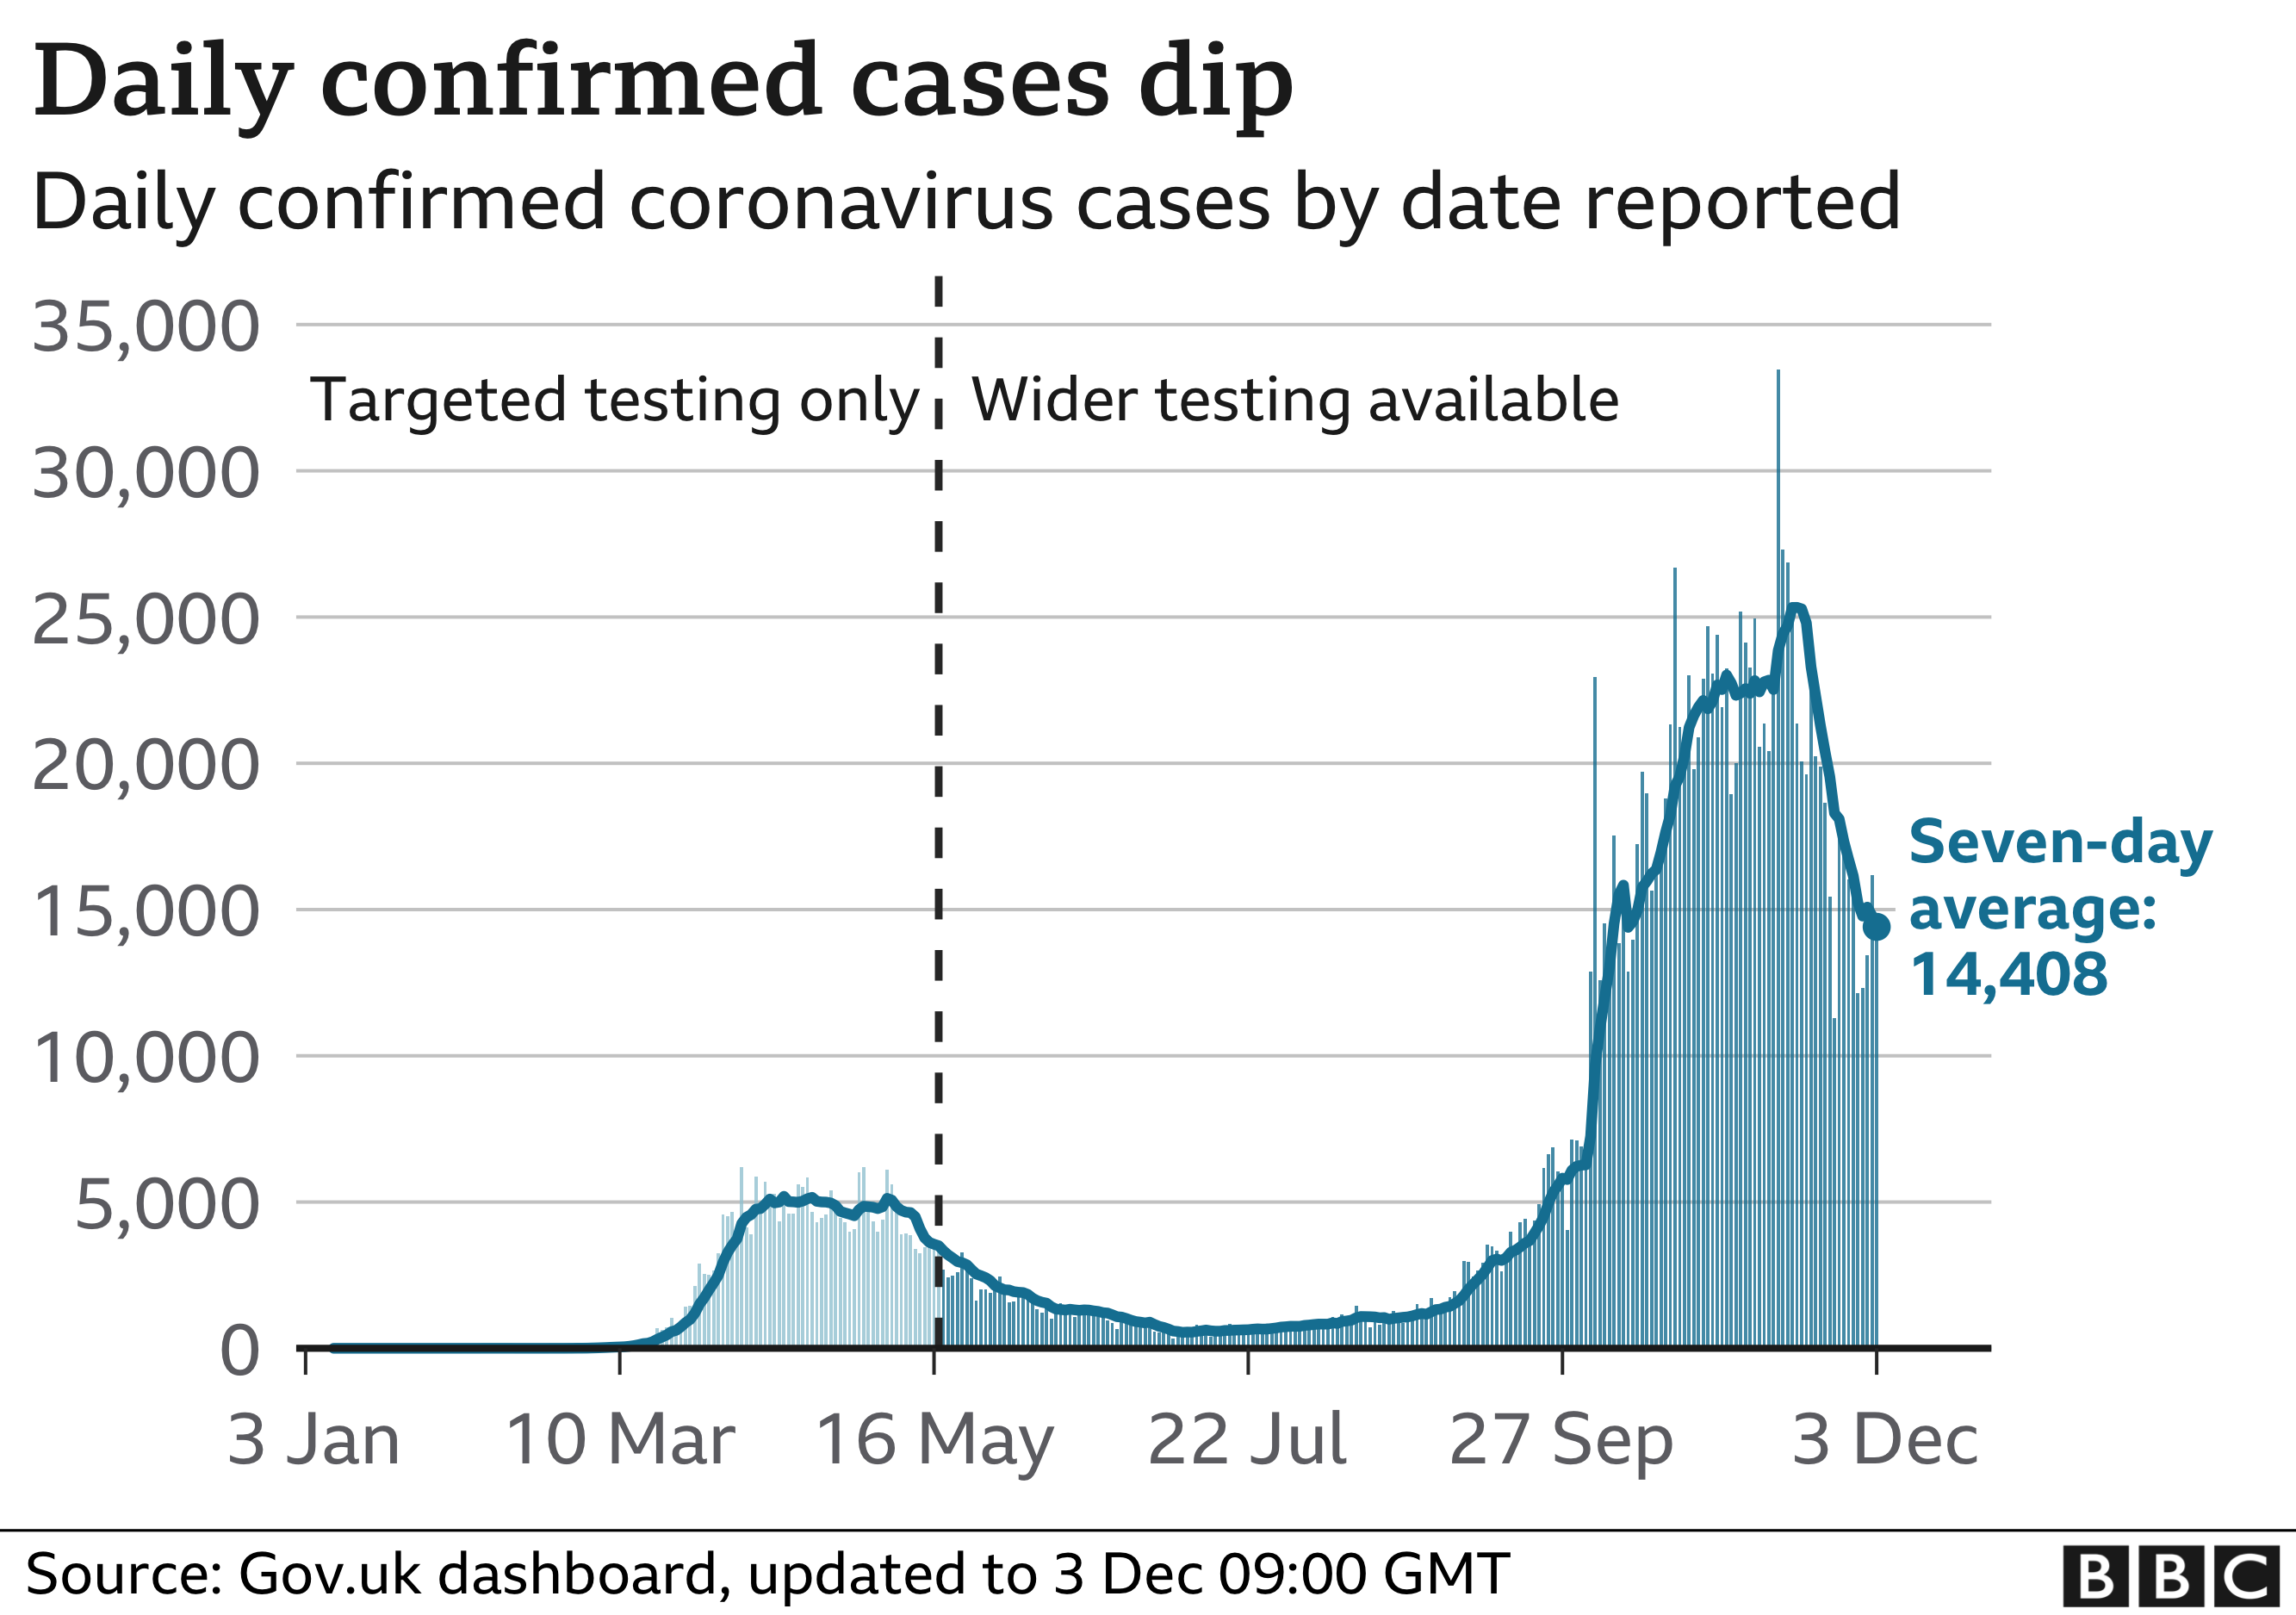 Chart showing confirmed daily cases and seven-day average